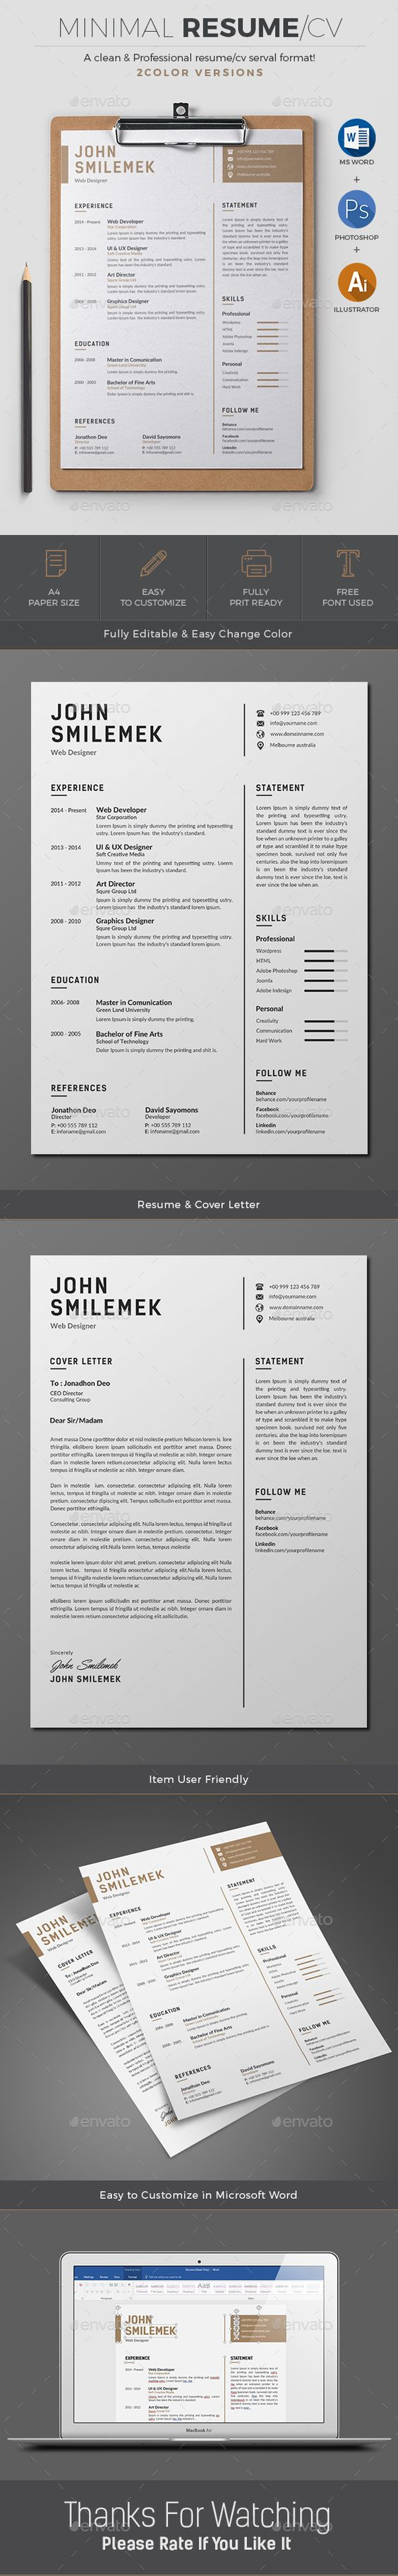 Creative Resume Cover Letter Icon Pack by